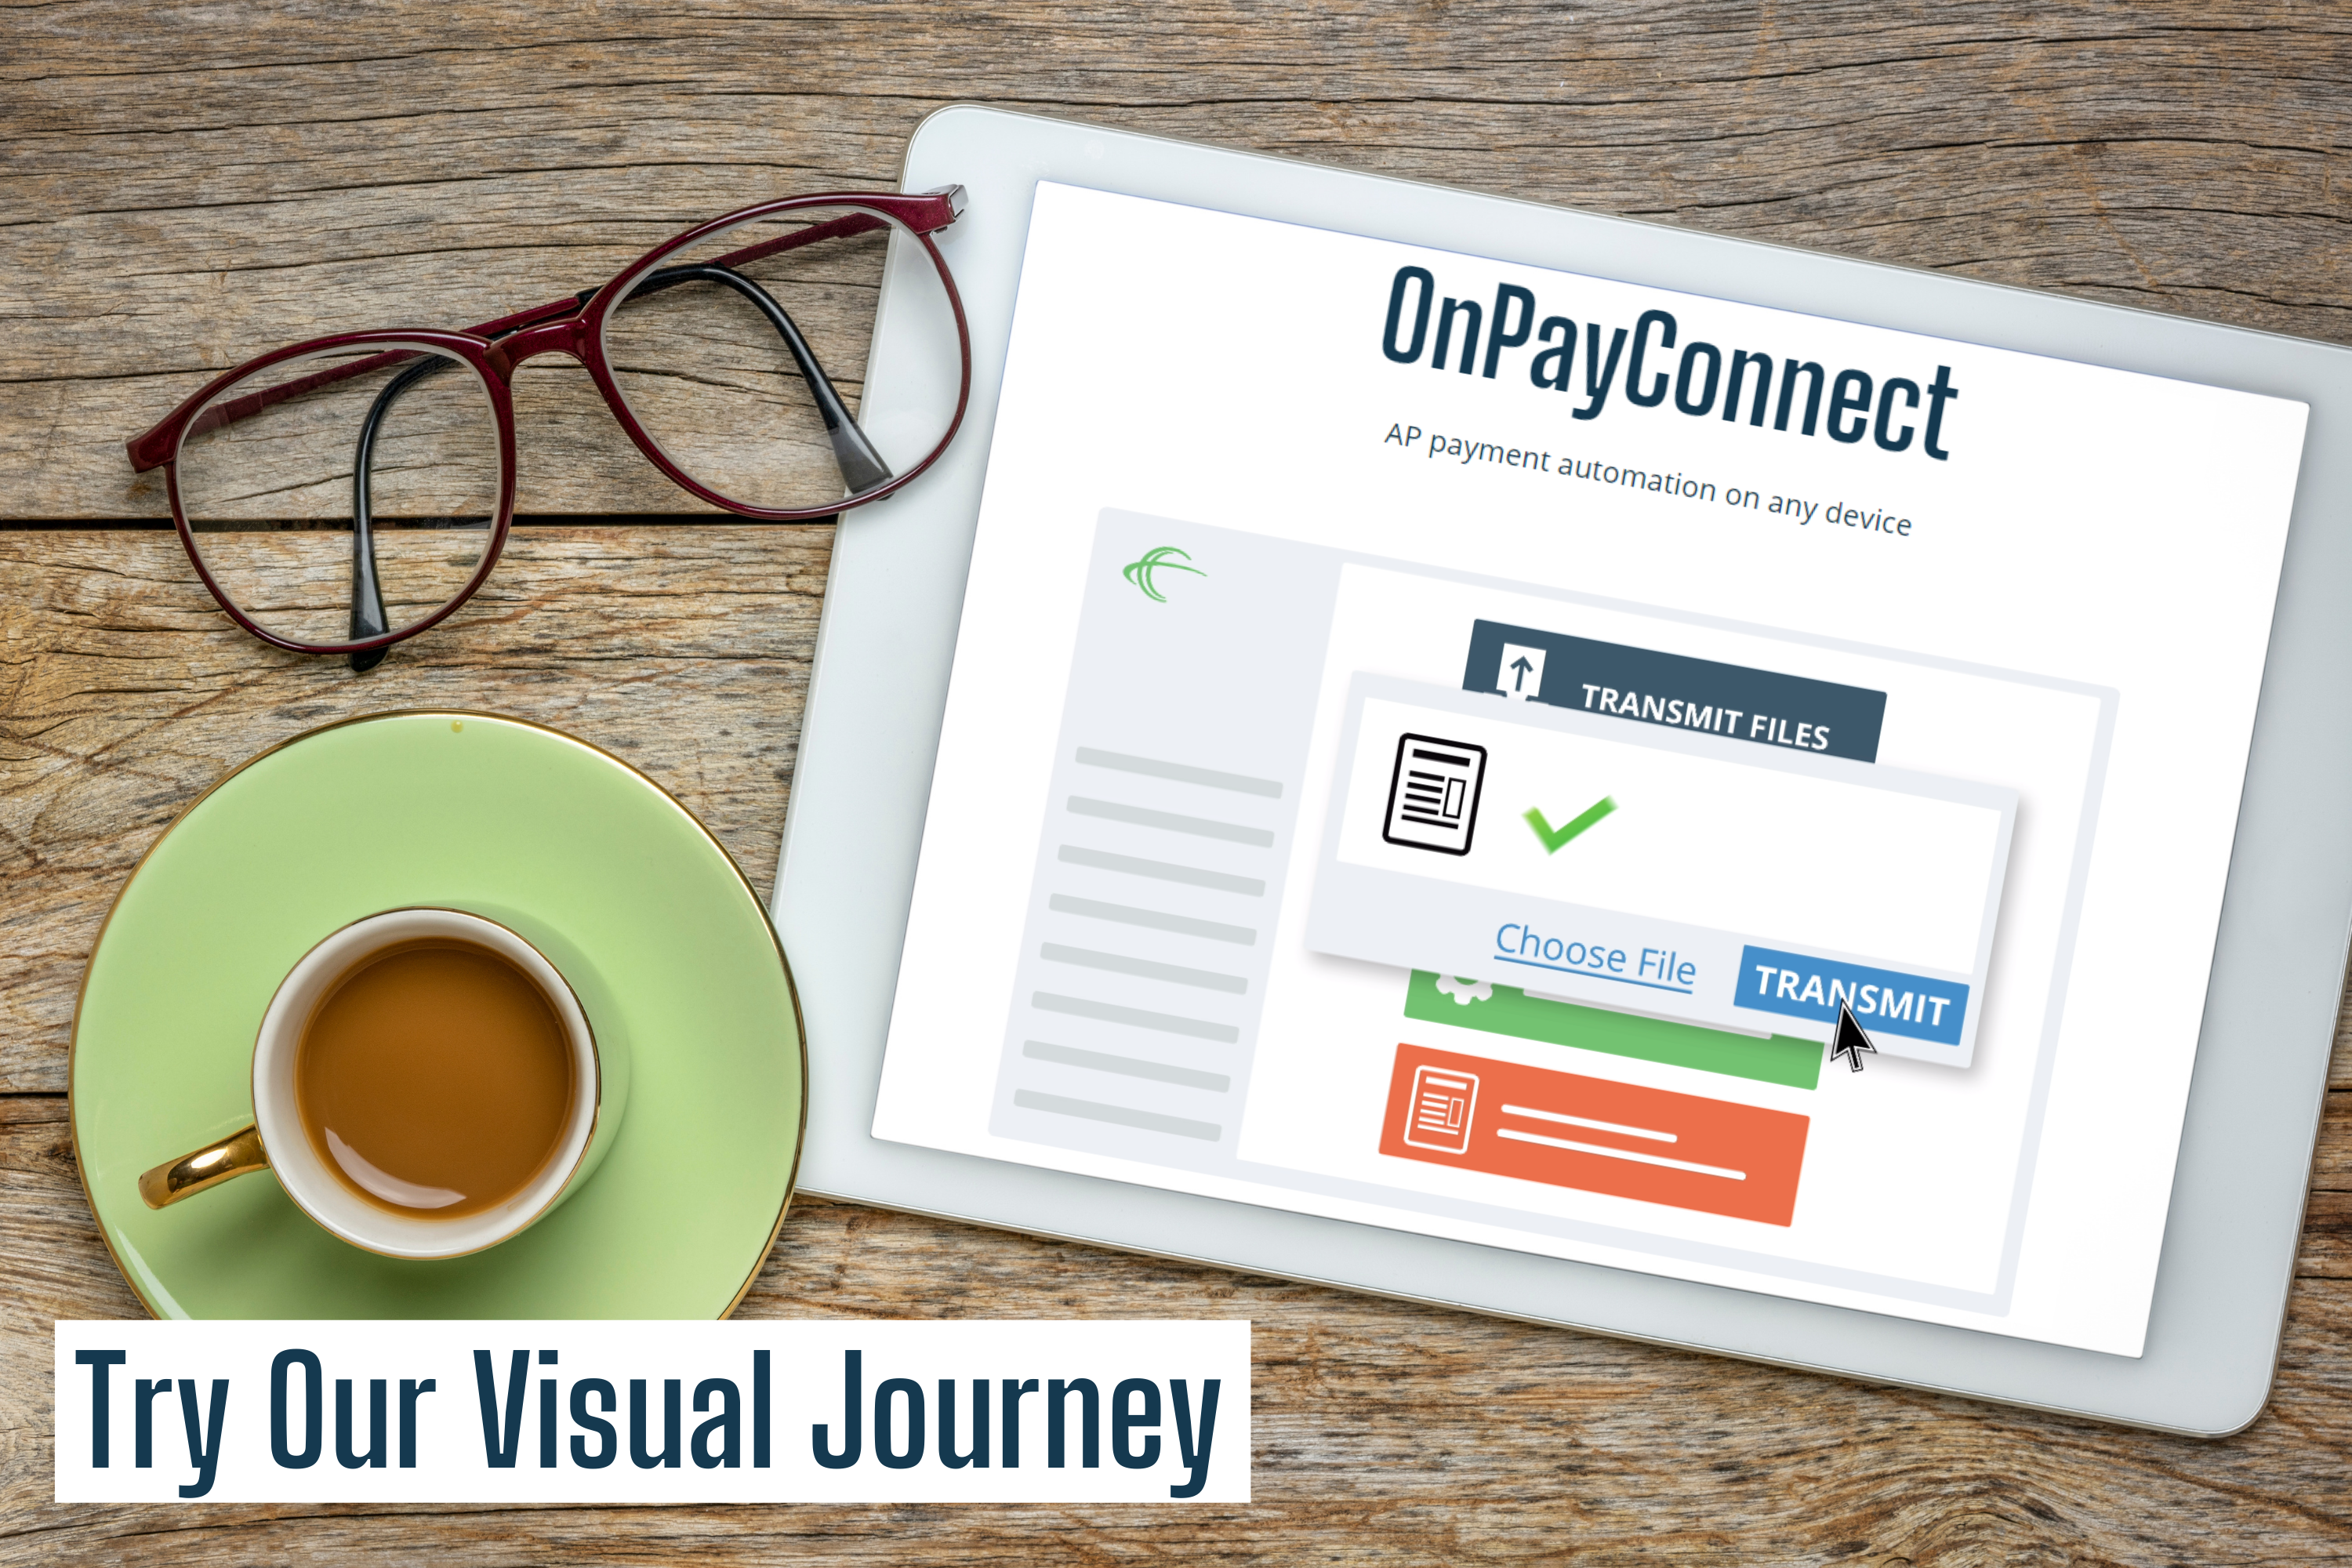 digital tablet with screen showing onpayconnect payment automation software visual journey